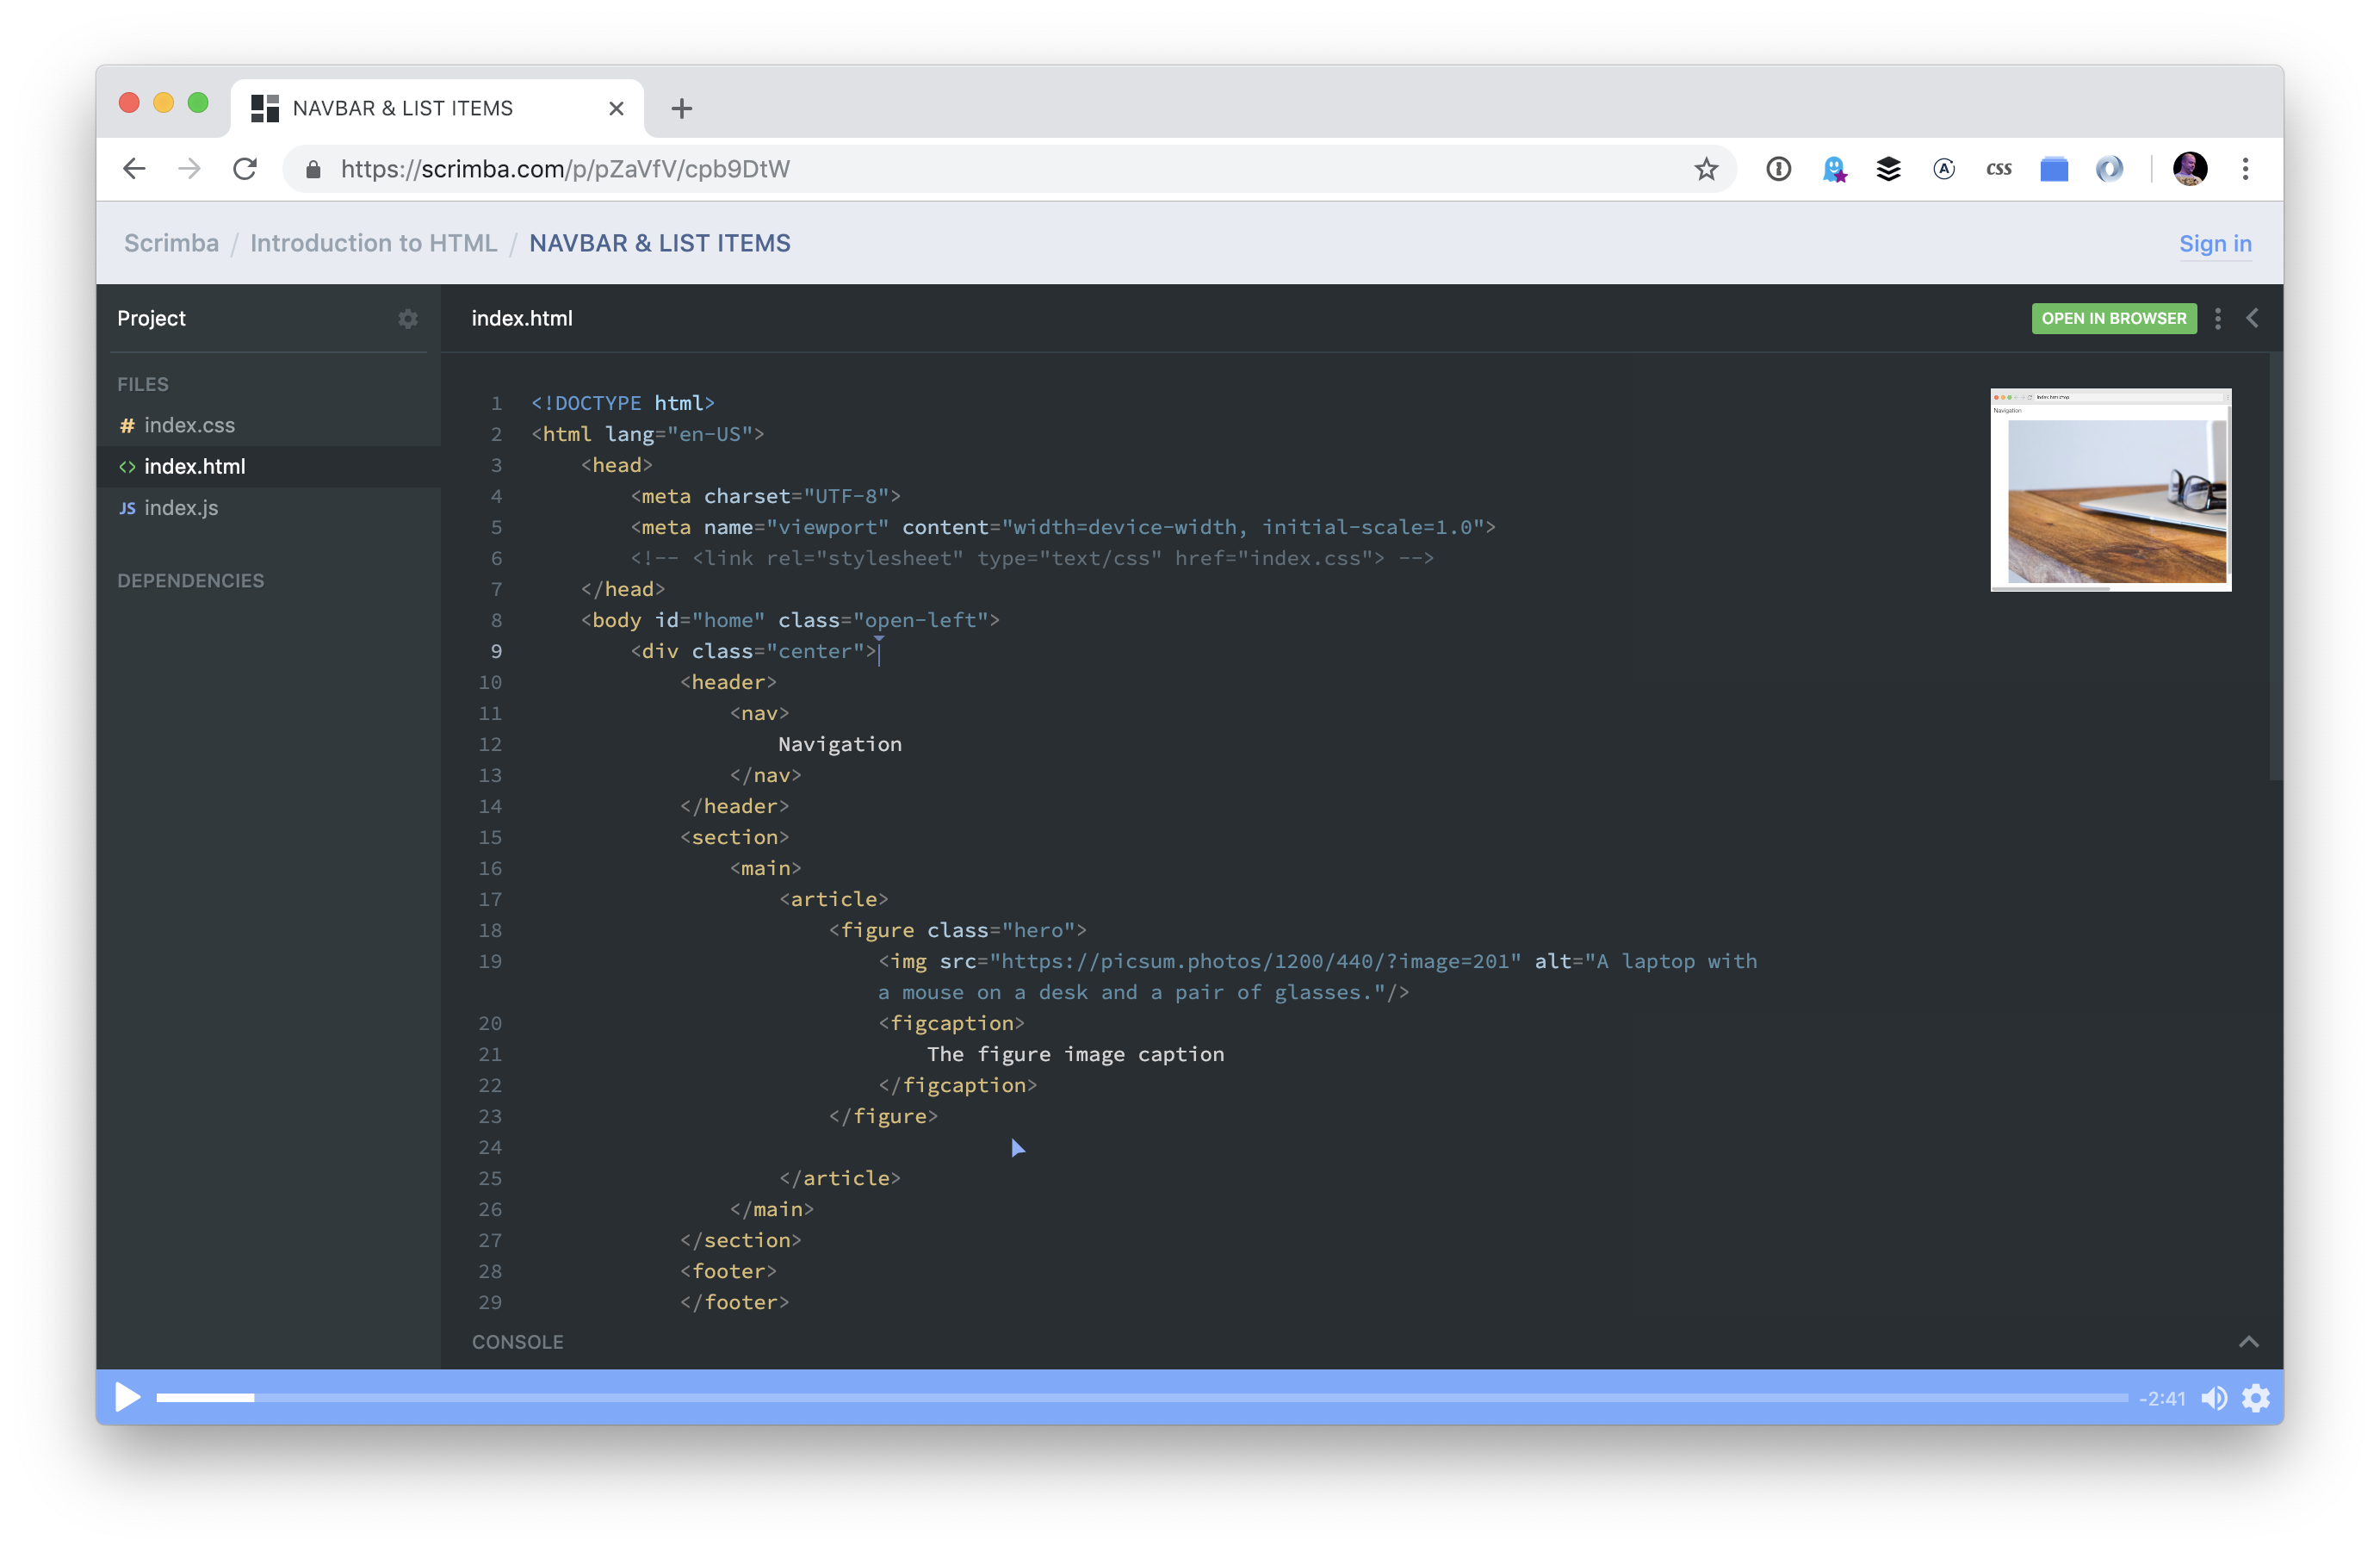 A screenshot of the Scrimba course. It resembles a code editor with a dark gray background, sidebar outlining web assets, and an editor with code in the main area.